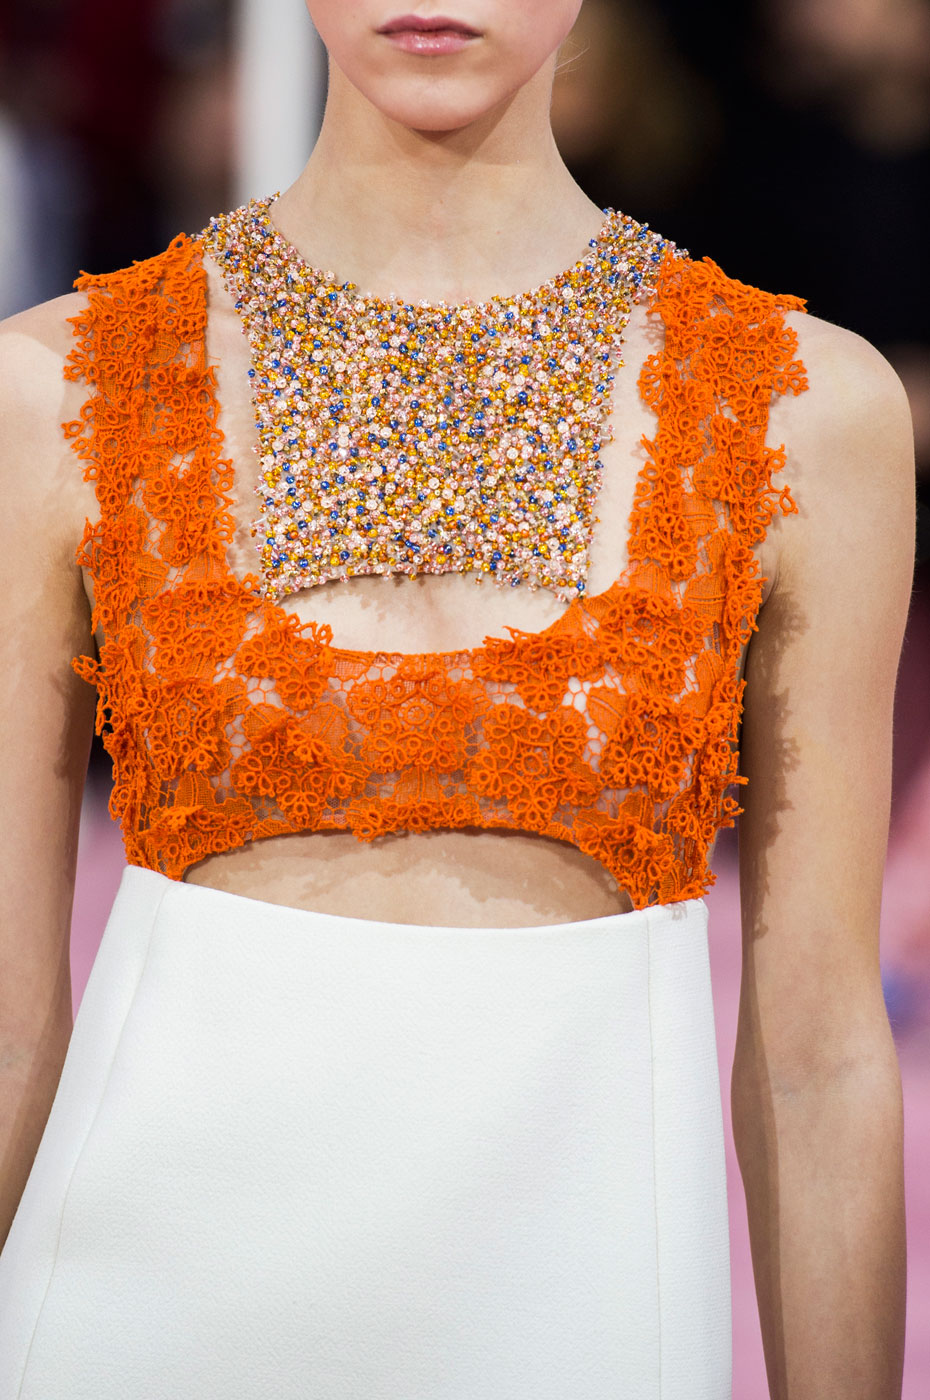 Christian-Dior-fashion-runway-show-close-ups-haute-couture-paris-spring-summer-2015-the-impression-190